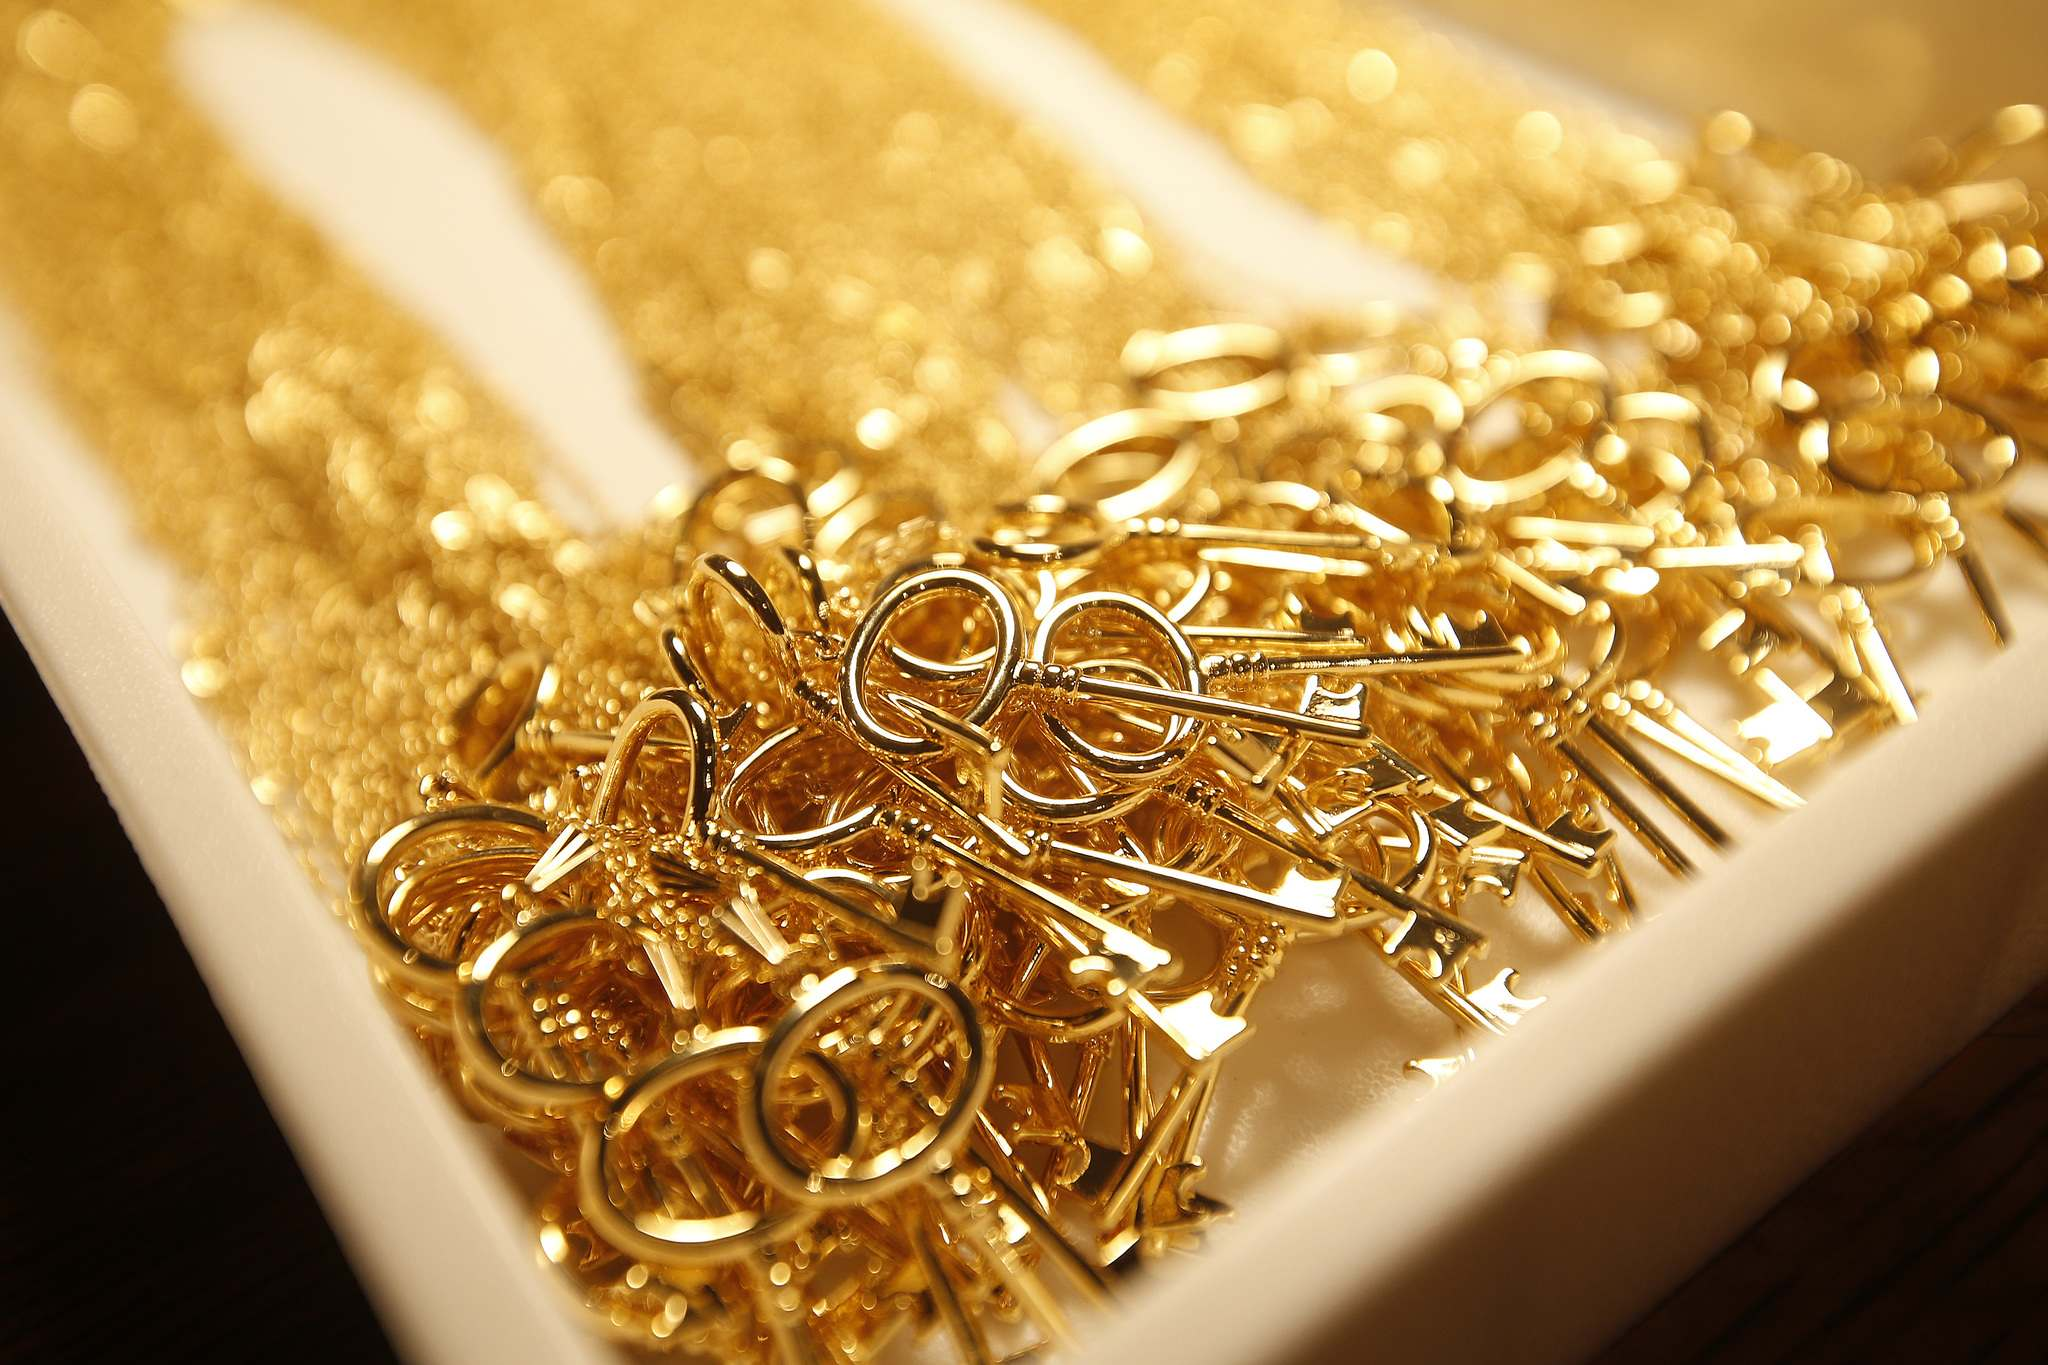 JOHN WOODS / WINNIPEG FREE PRESS</p><p>Velia Amador has been hard at work creating 250 of Jillian Leigh's custom key necklaces for Emmy and Golden Globe nominees.</p>